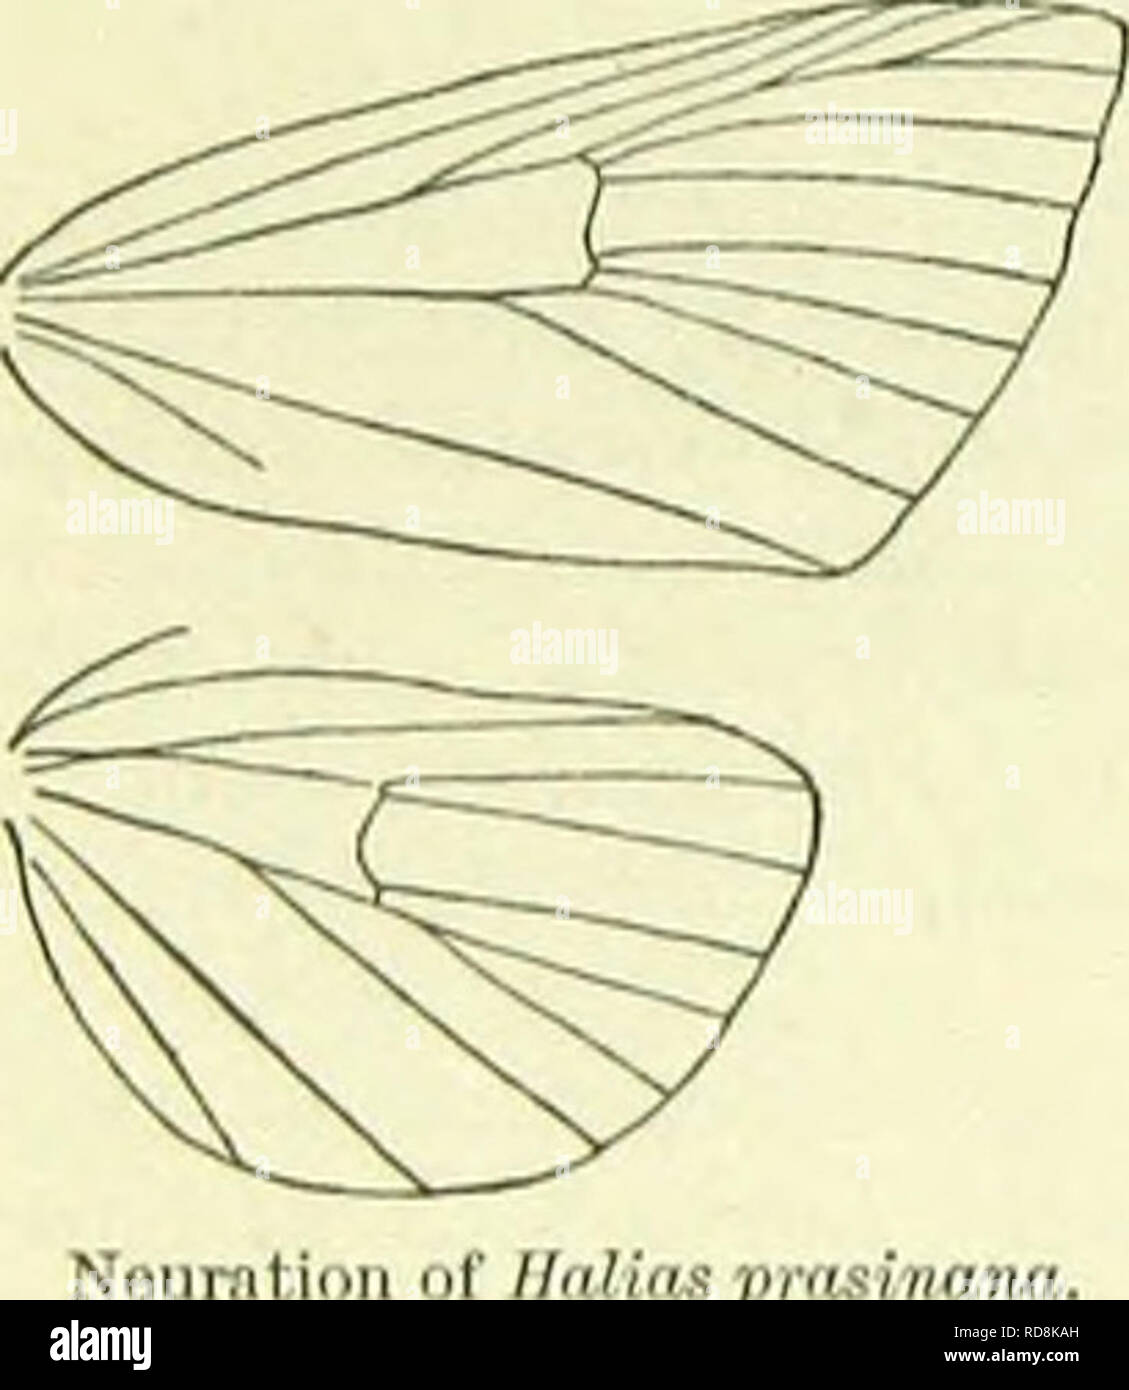 . A handbook of British lepidoptera. Lepidoptera. â M OARADRININA [llYLOPHILA ciliated. Palpi short, ascending, with appressed scales. Thorax thinly hairy beneath. Abdomen smooth-sealed. Tibiae smooth- scaled. Forewings: 9 and 10 out of 8. Hindwings: 3 and 4 connate, 5 approximated to 4, 6 and 7 connate, 8 from middle of cell. Two or three species found in temperate Asia are assigned to the same genus. Larva without hair-tufts. Cocoon boat-shaped. 1. H. bicolorana, Ftiesl. (quercana, Sehiff.) 40-45 mm. Head green, faco red beneath. Forewings bright green ; costal edge pale yellowish ; first an - Stock Image